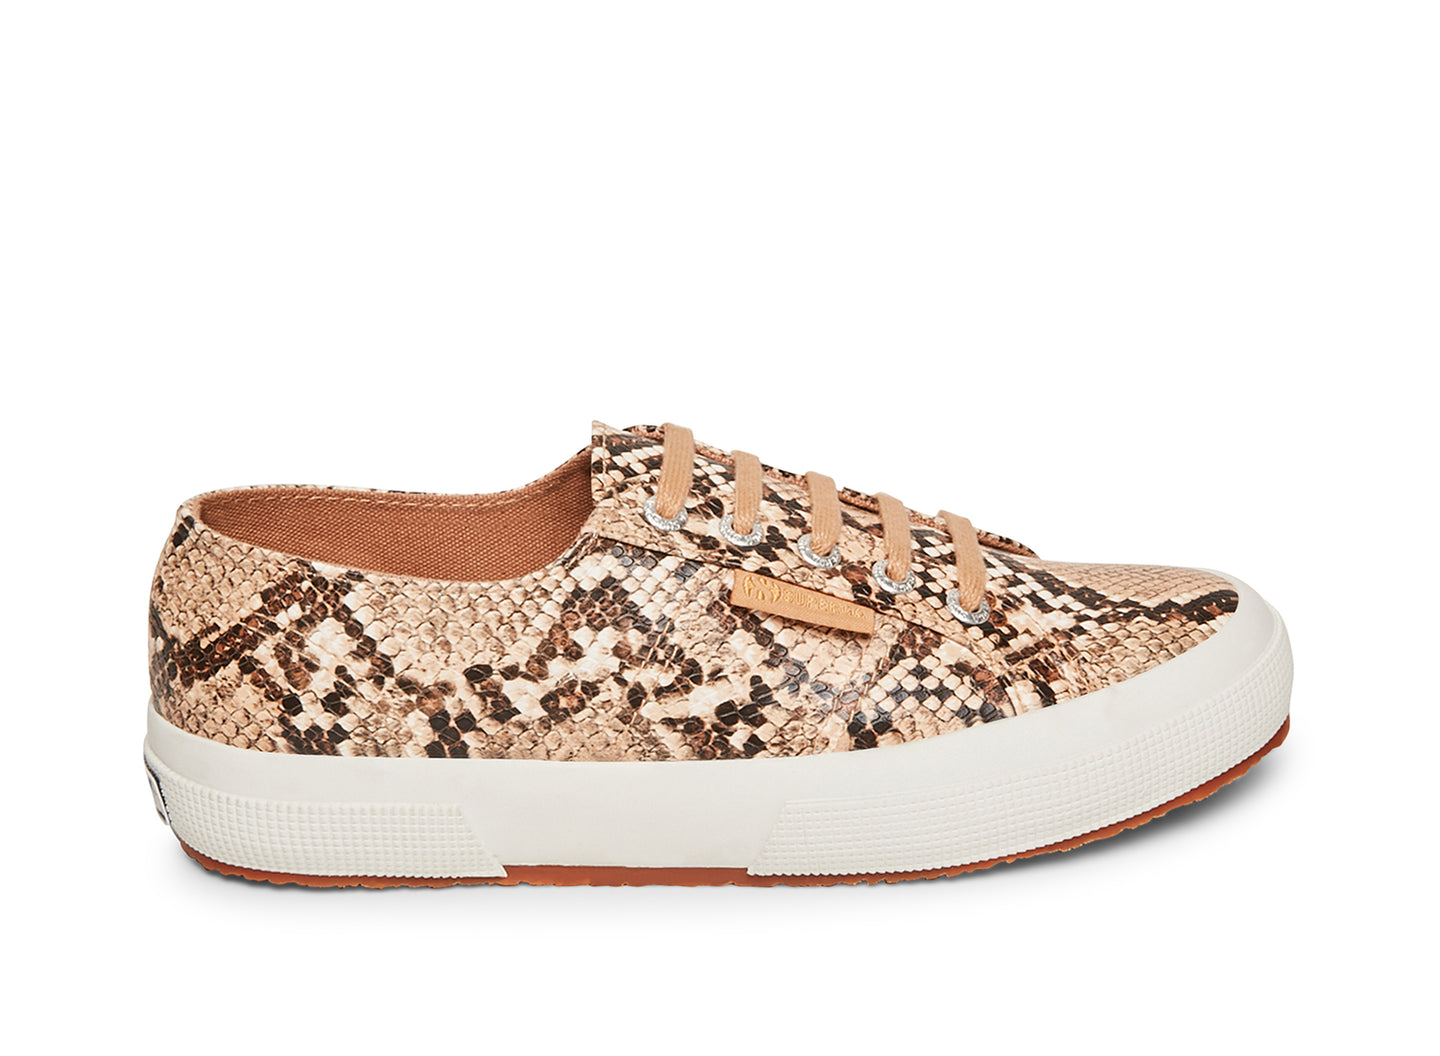 2750 SNAKEPUFANW BROWN SNAKE - Women's